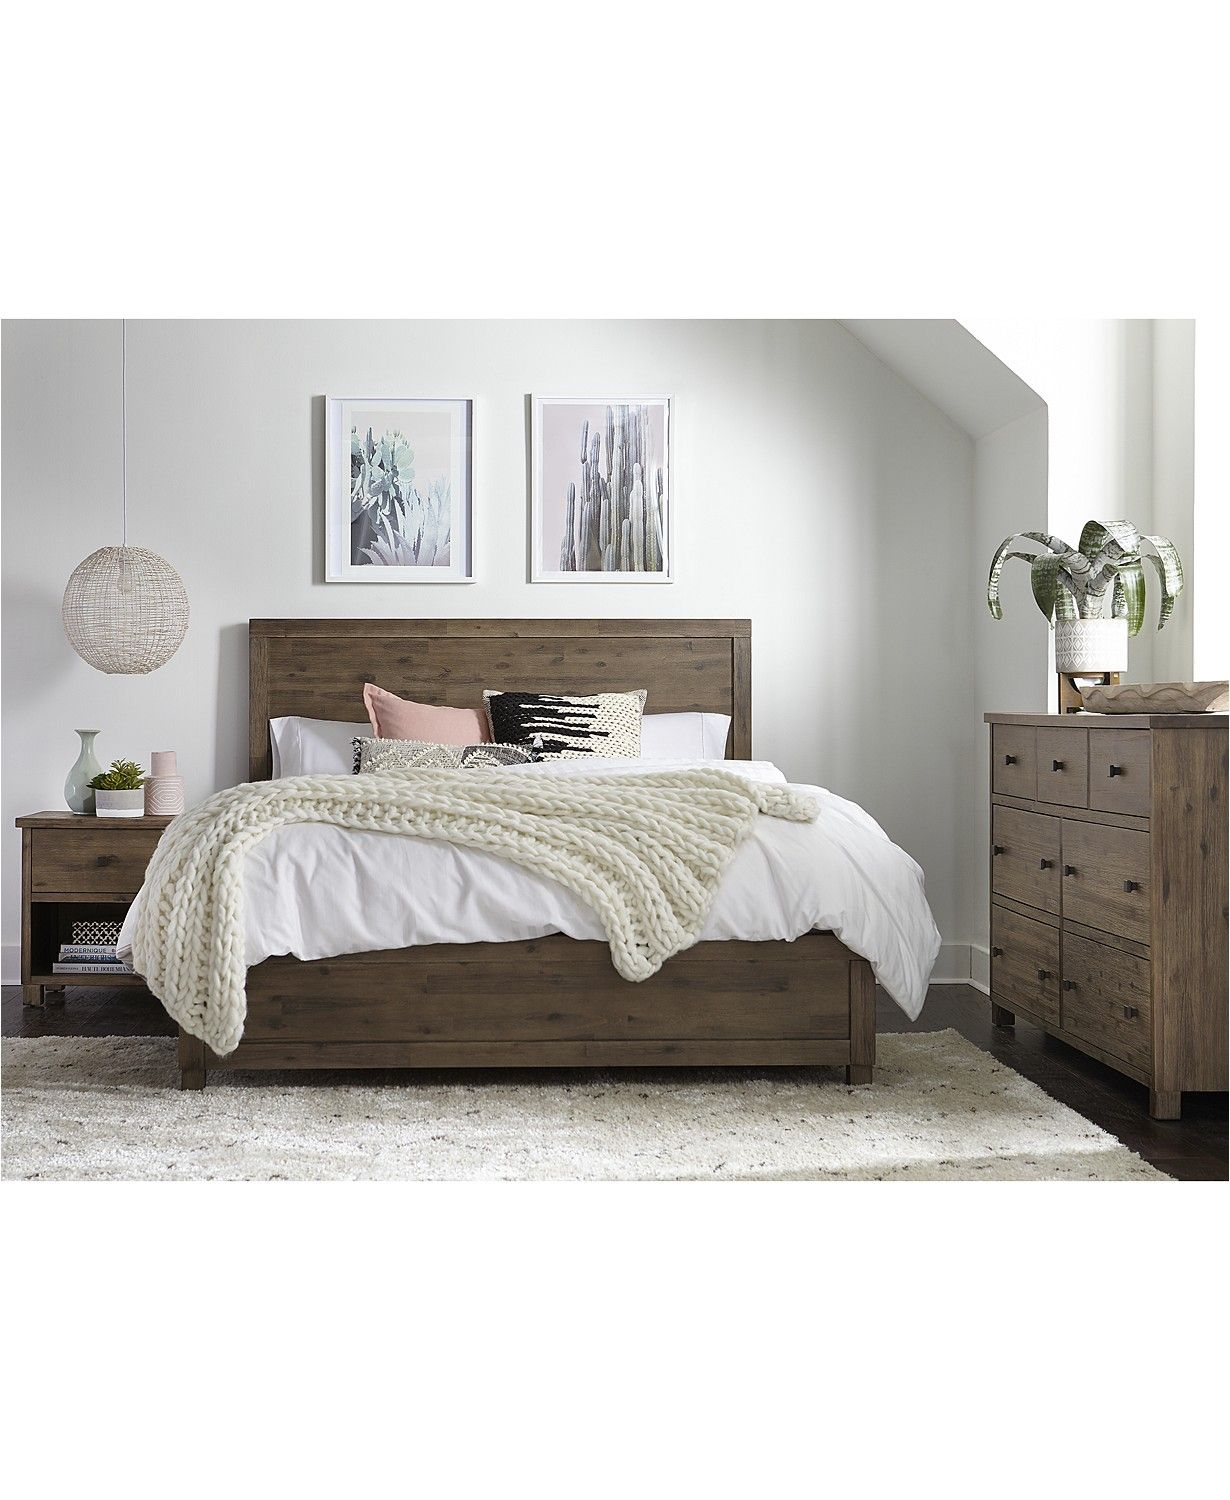 Best Furniture Canyon Platform Bedroom Furniture 3 Piece 640 x 480